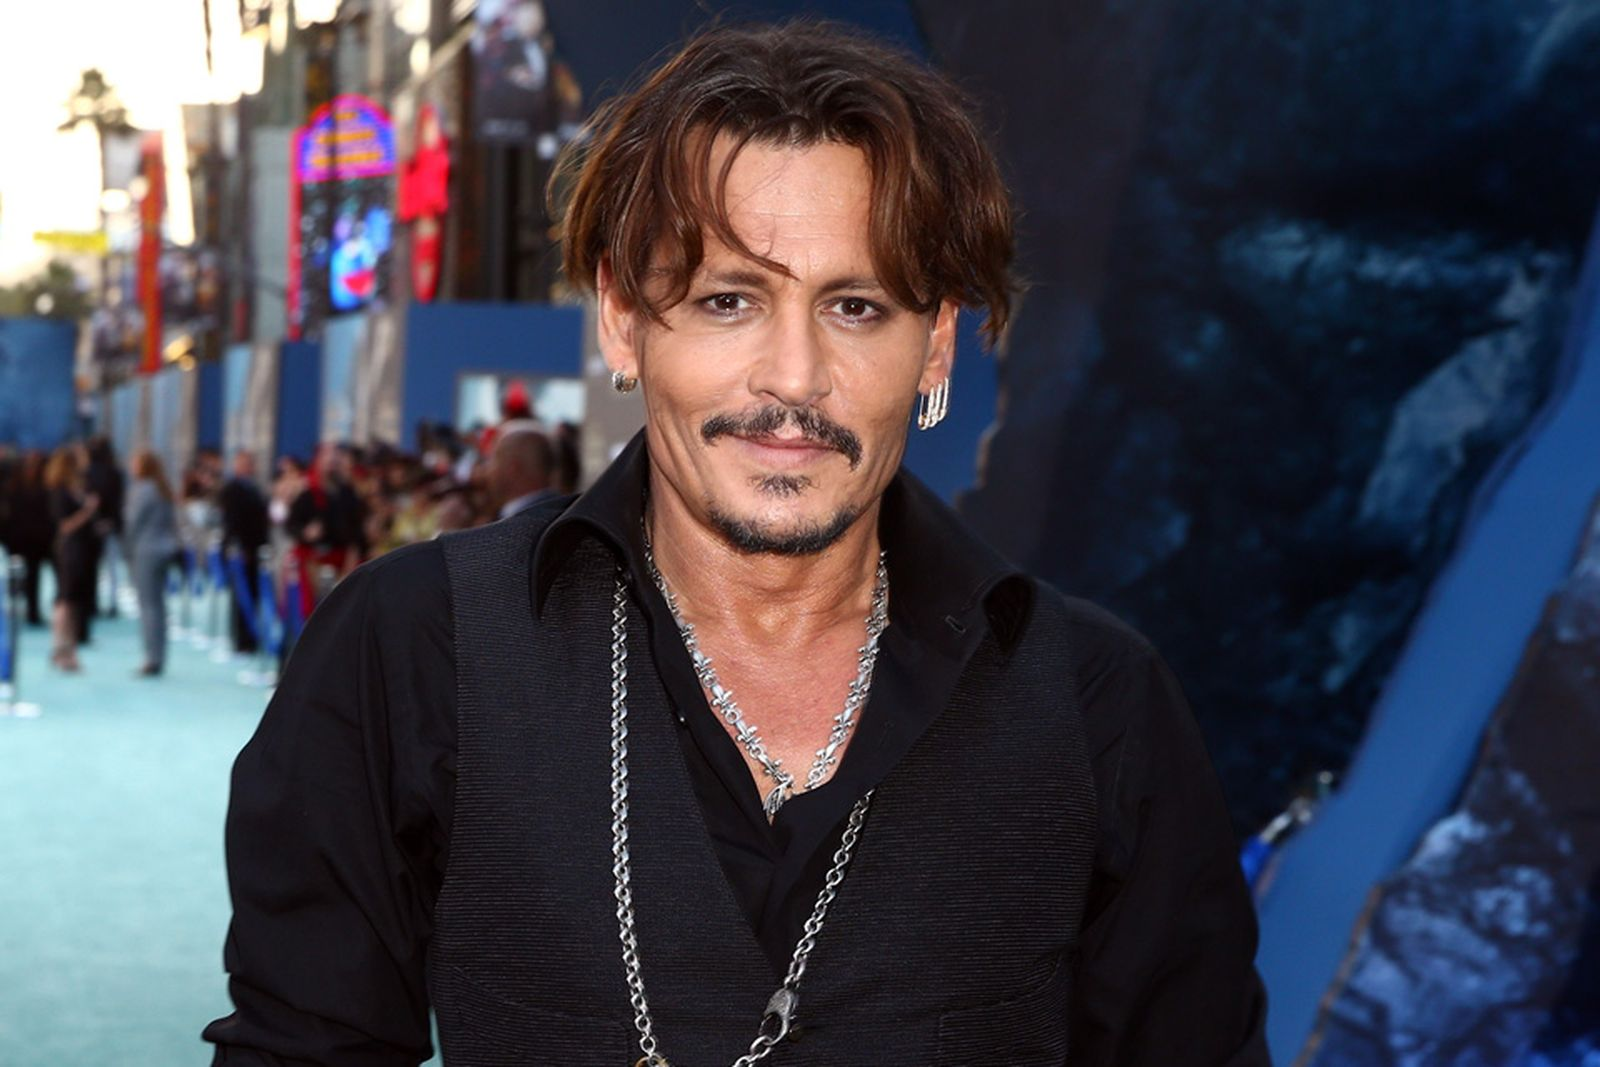 johnny depp biggie film pulled City of Lies Notorious B.I.G.